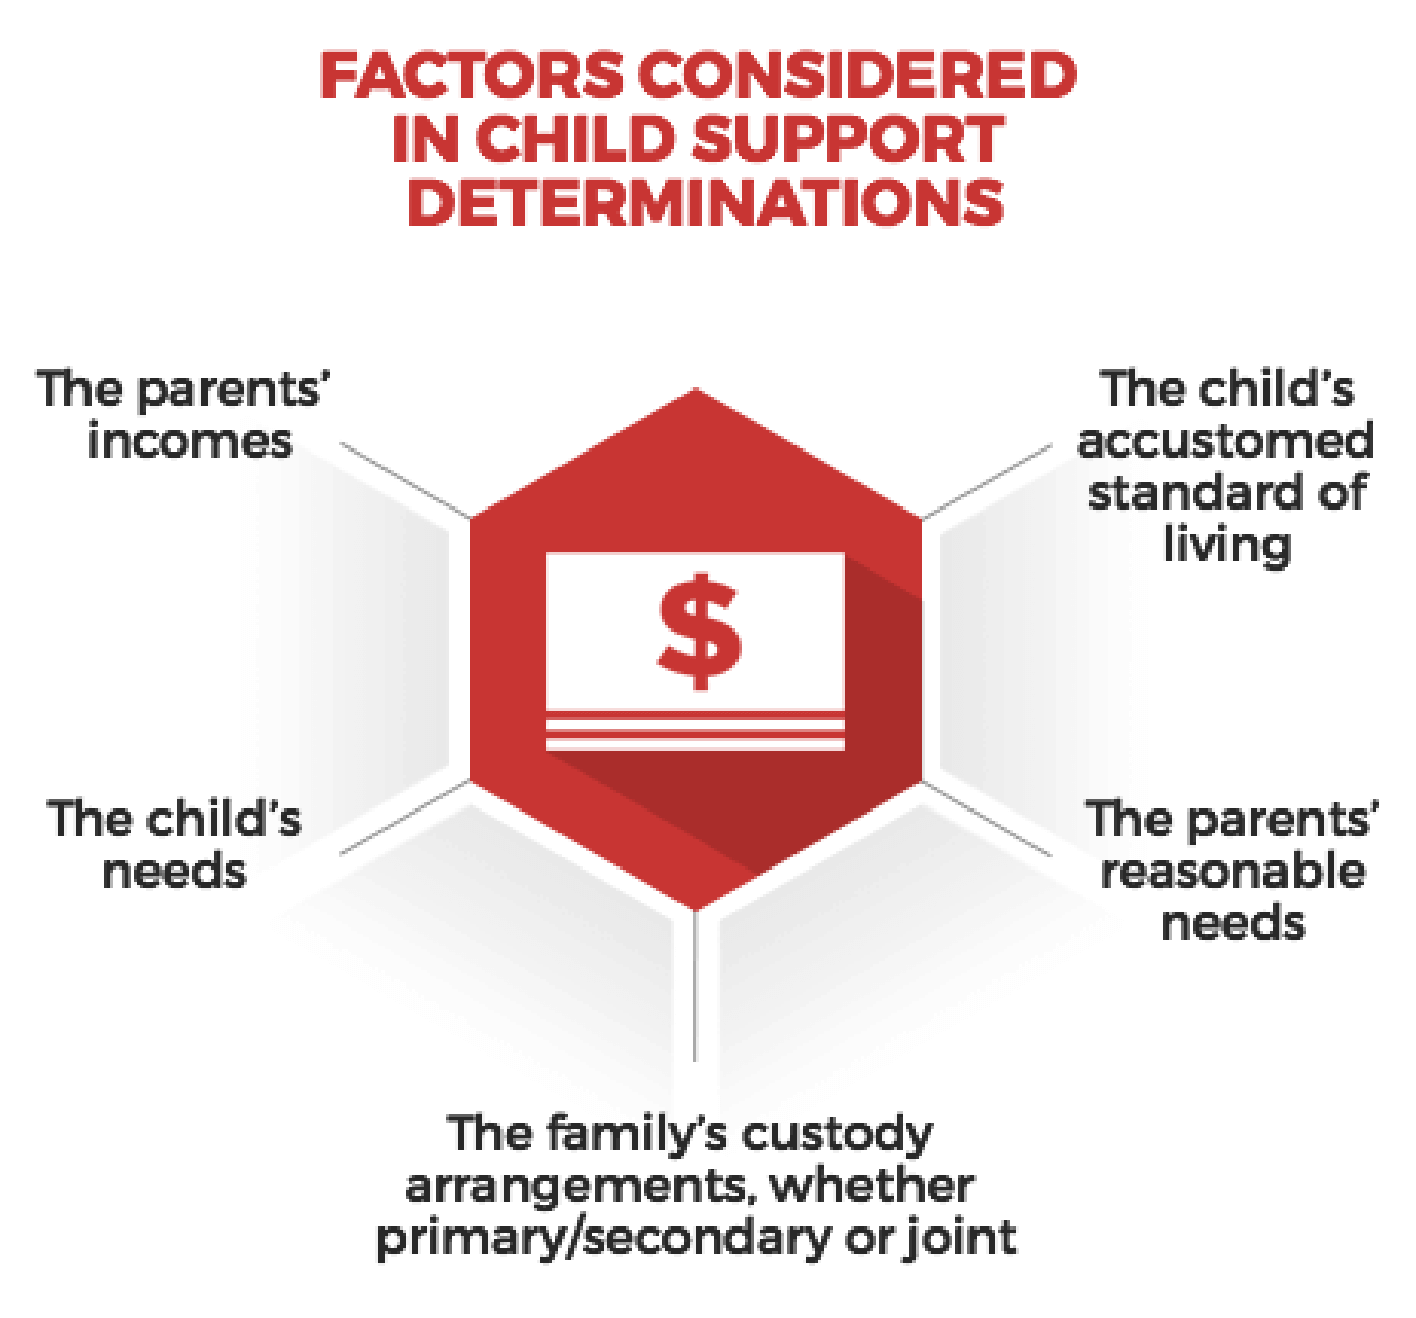 Factors considered in child support determiniations